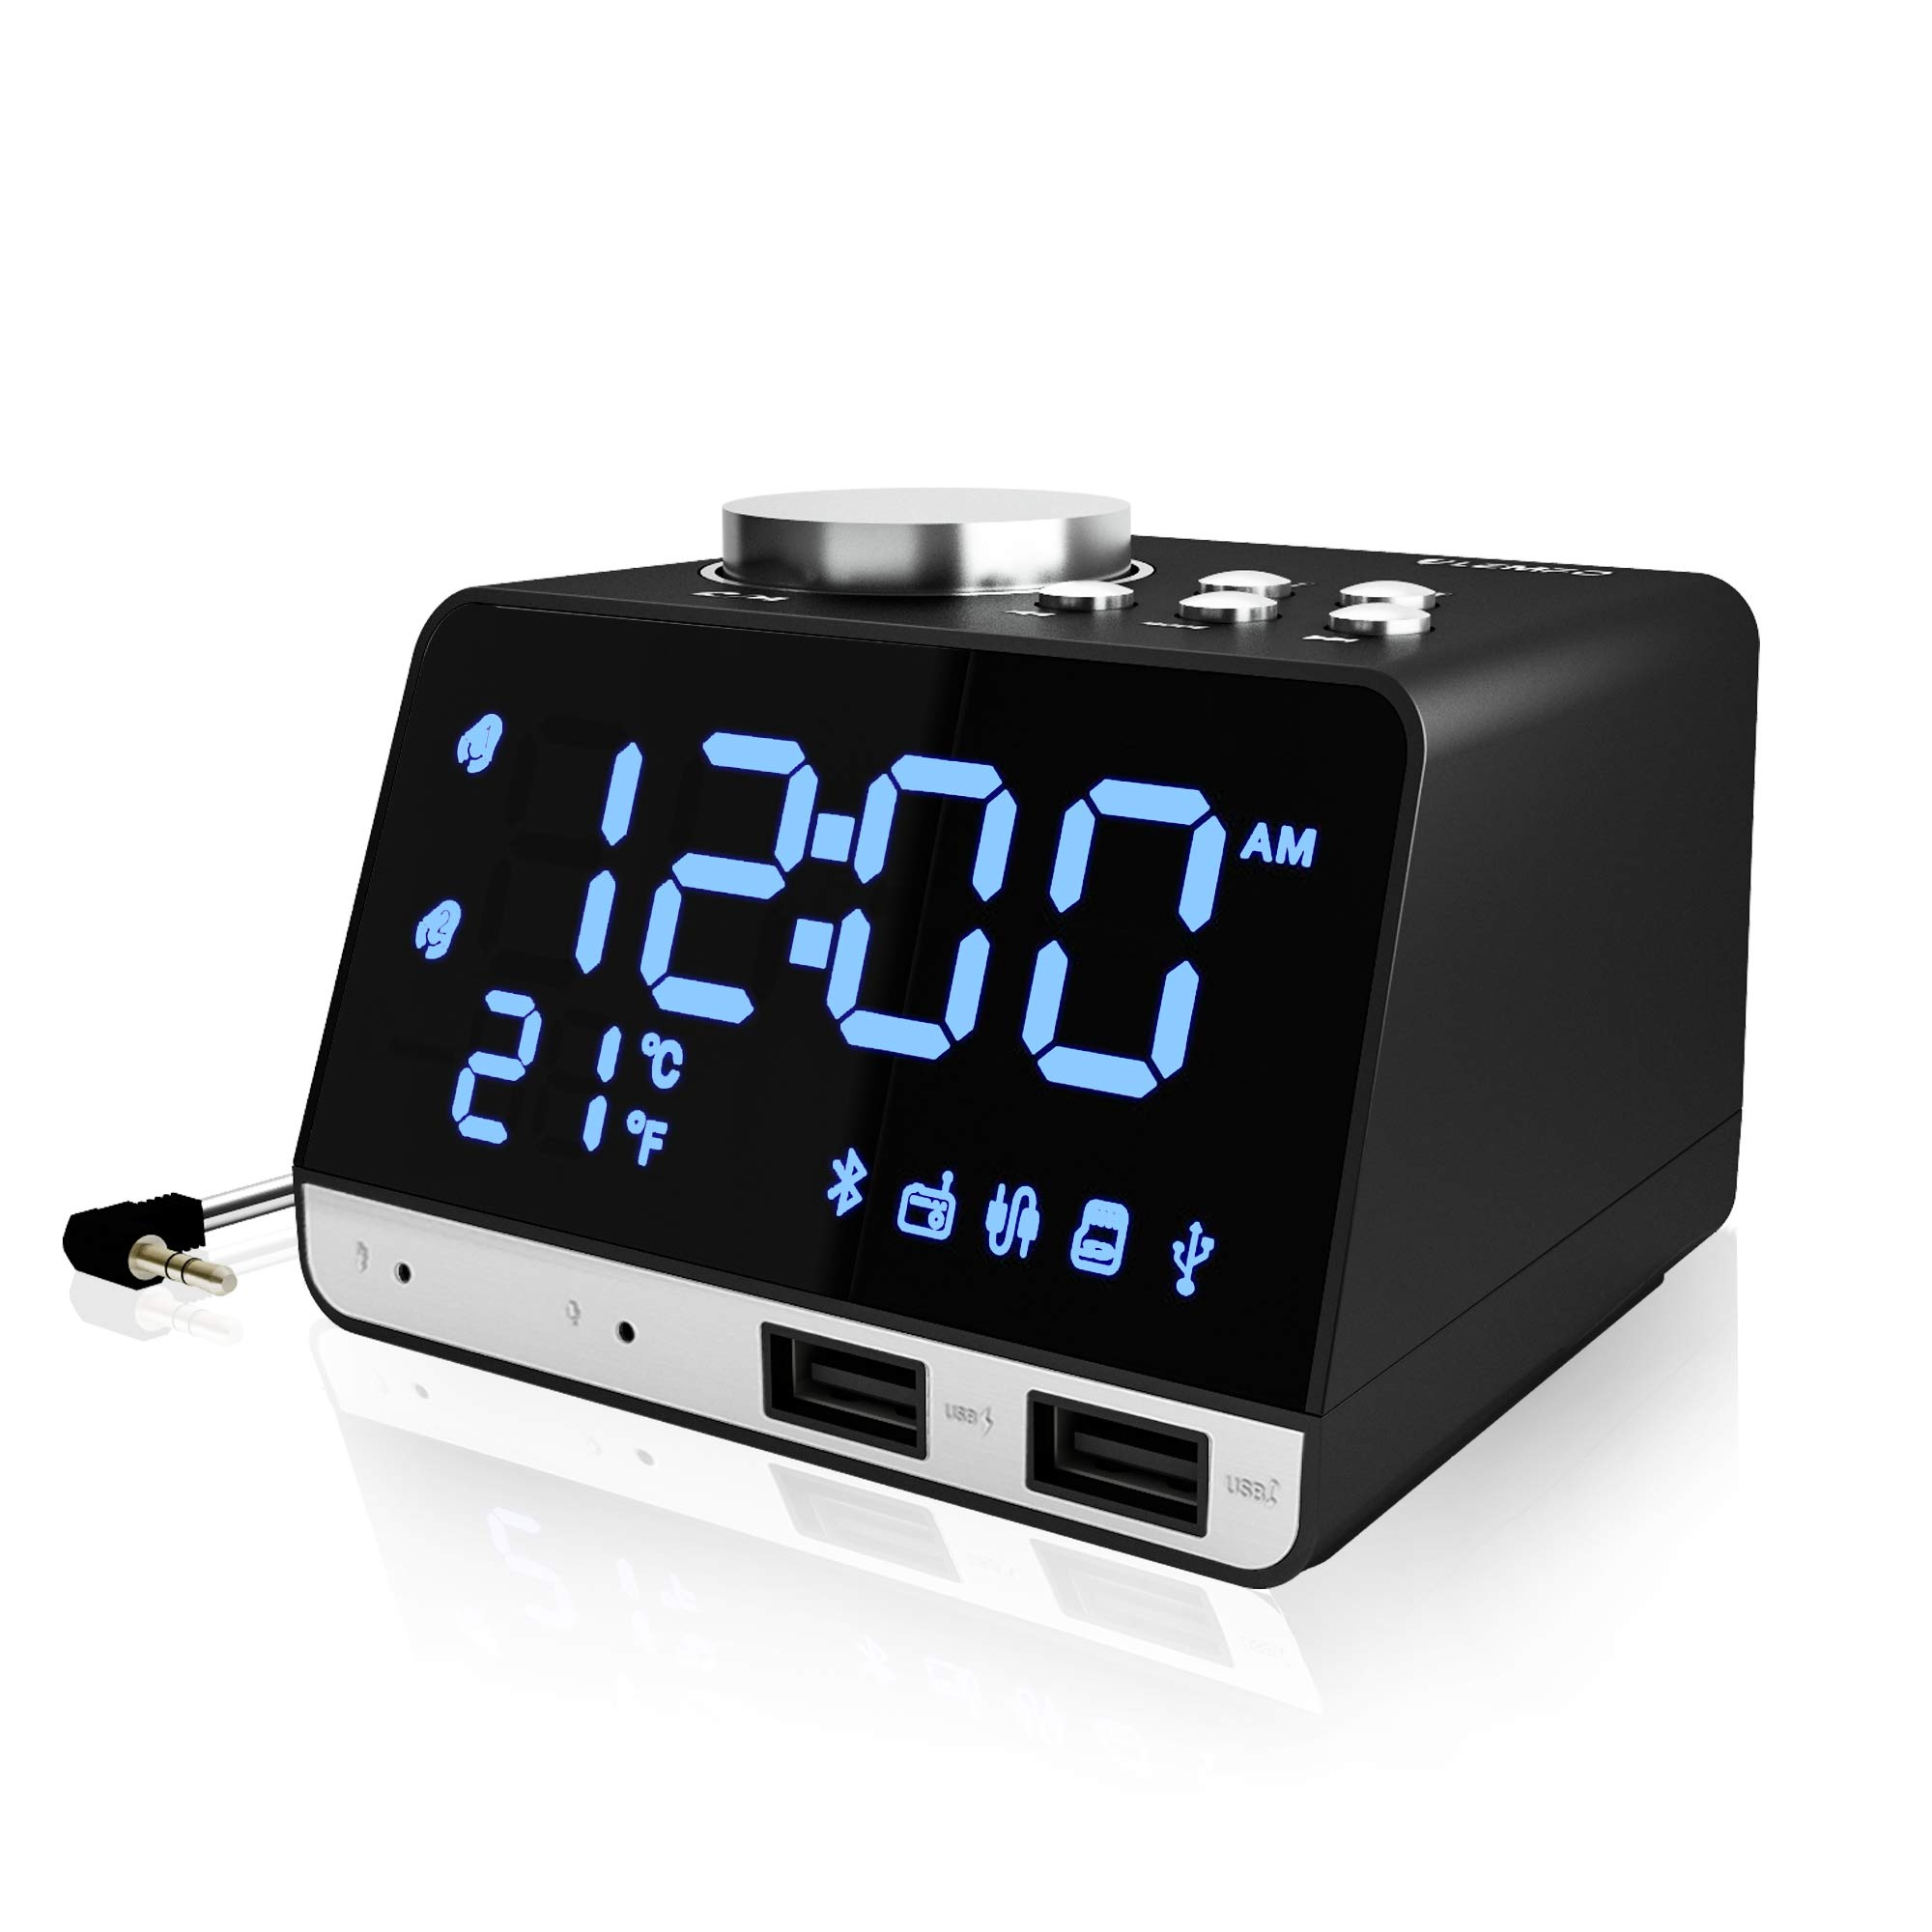 Clock Radio, Alarm Clock Radio for Bedrooms FM Radio Bluetooth Clock Radio with USB Charger Adjustable Brightness Volume Dual Alarms with Battery Backup LED Display Snooze Sleep Timer